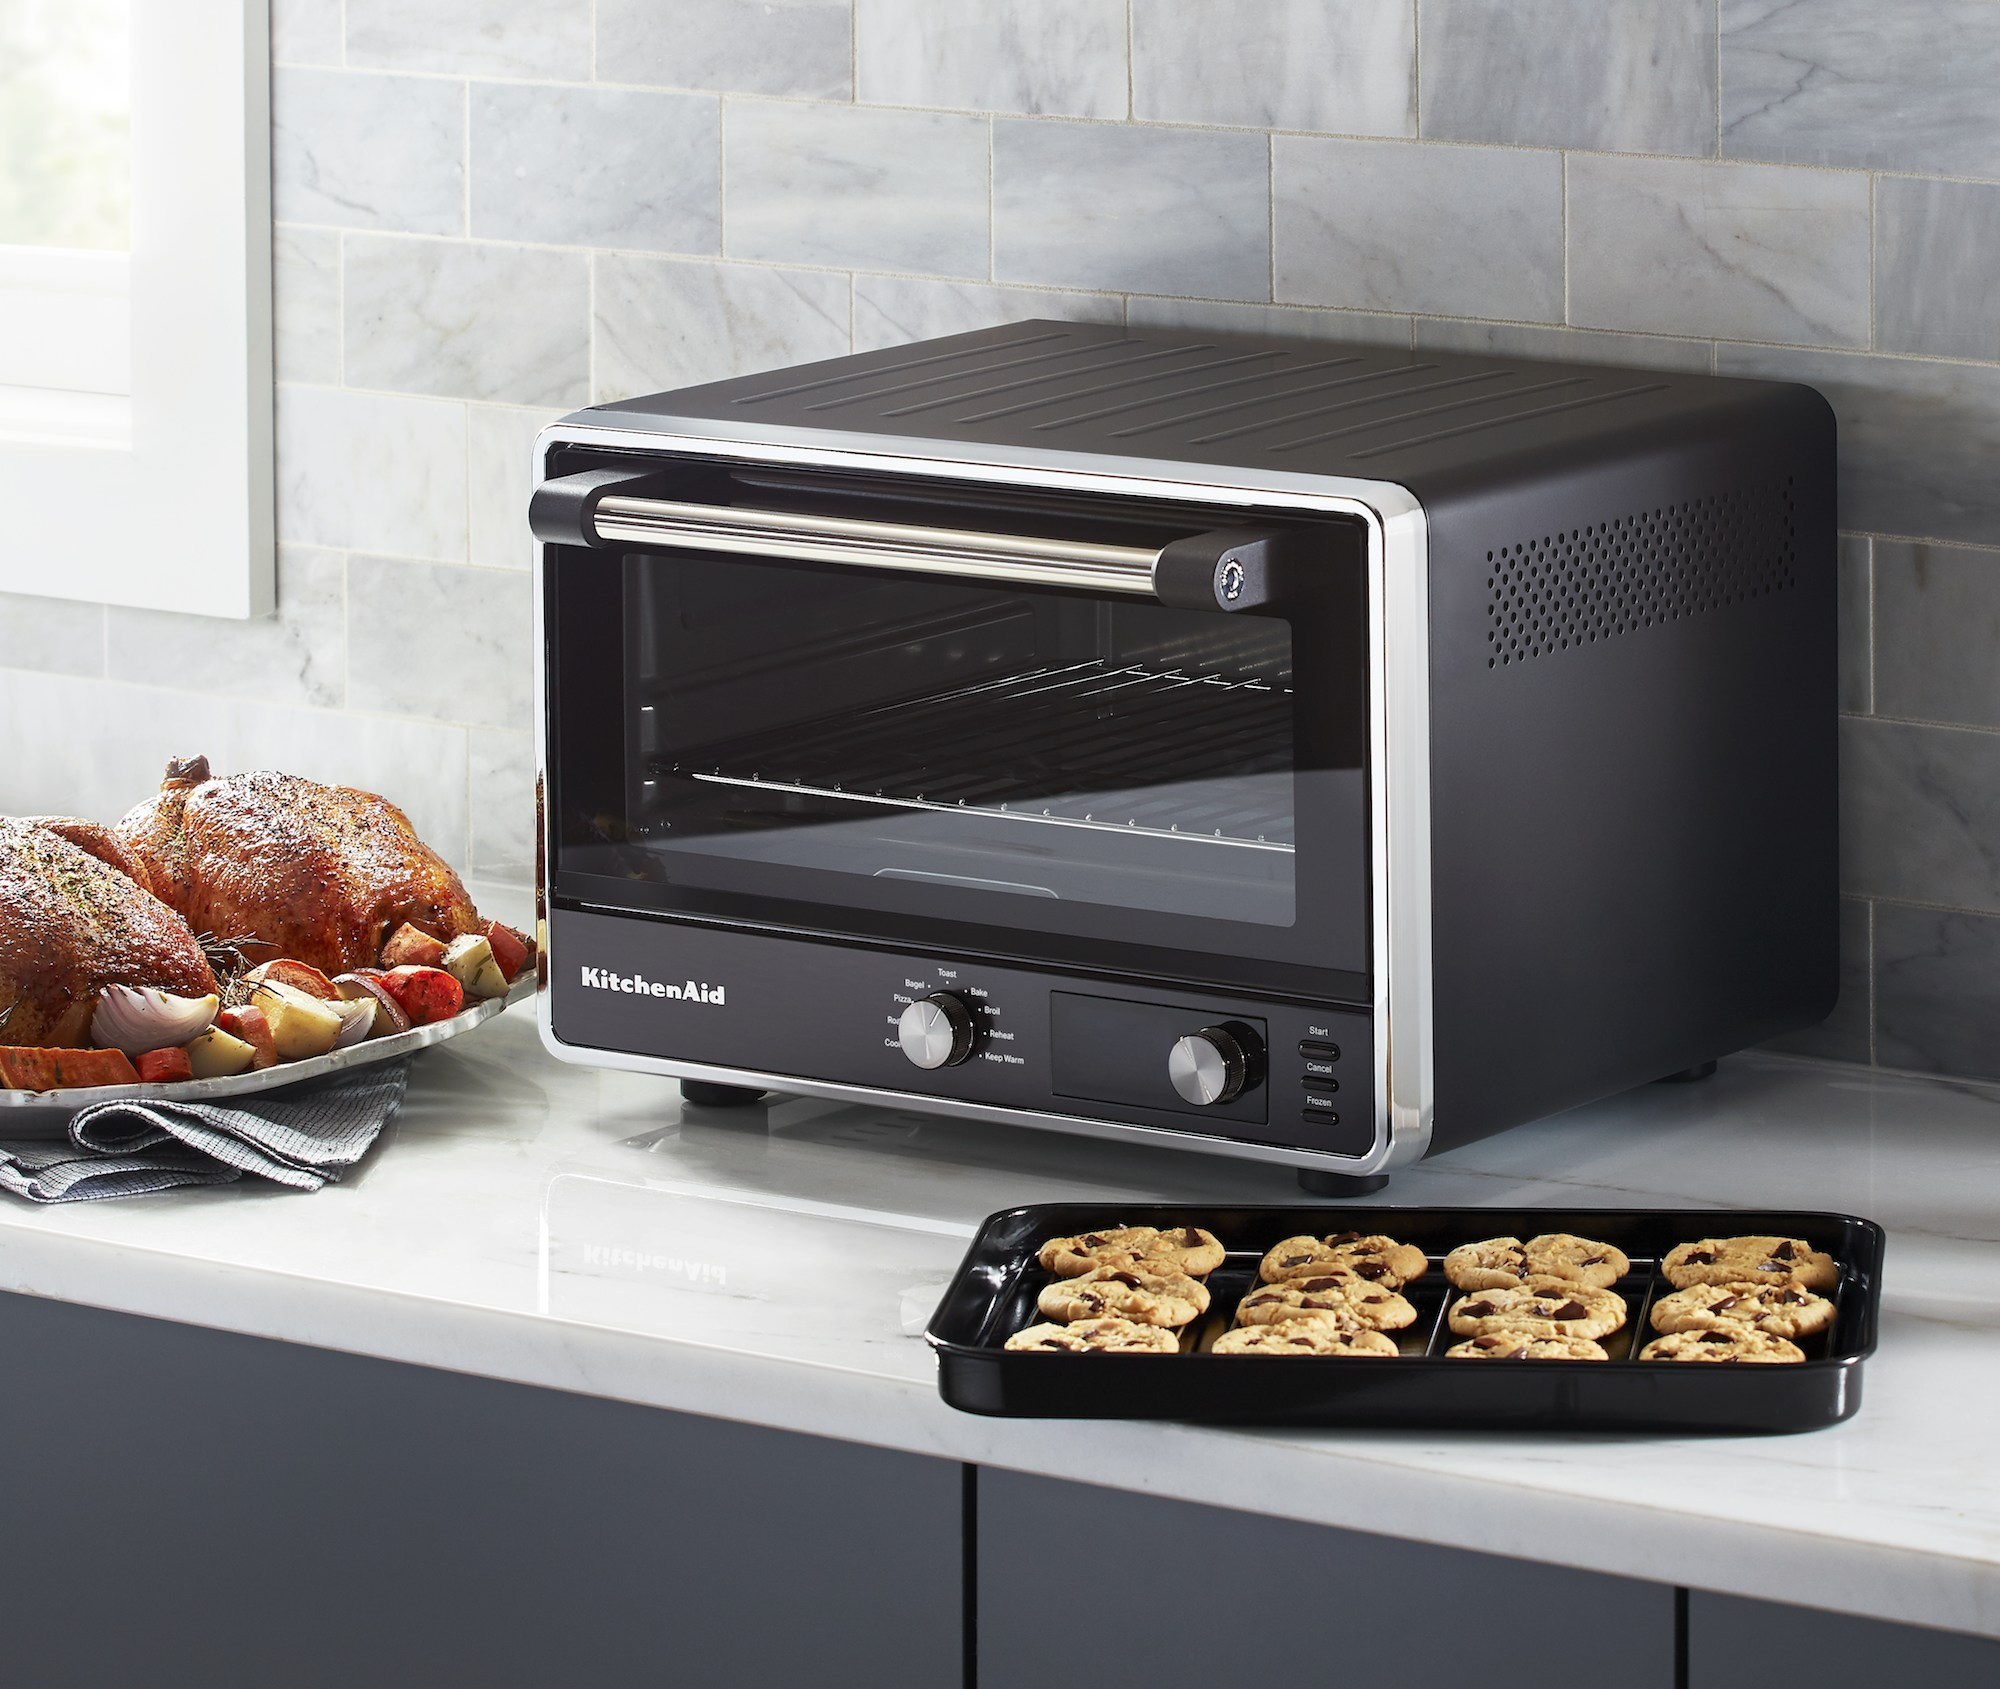 Kitchenaid Digital Countertop Oven Offers Full Size